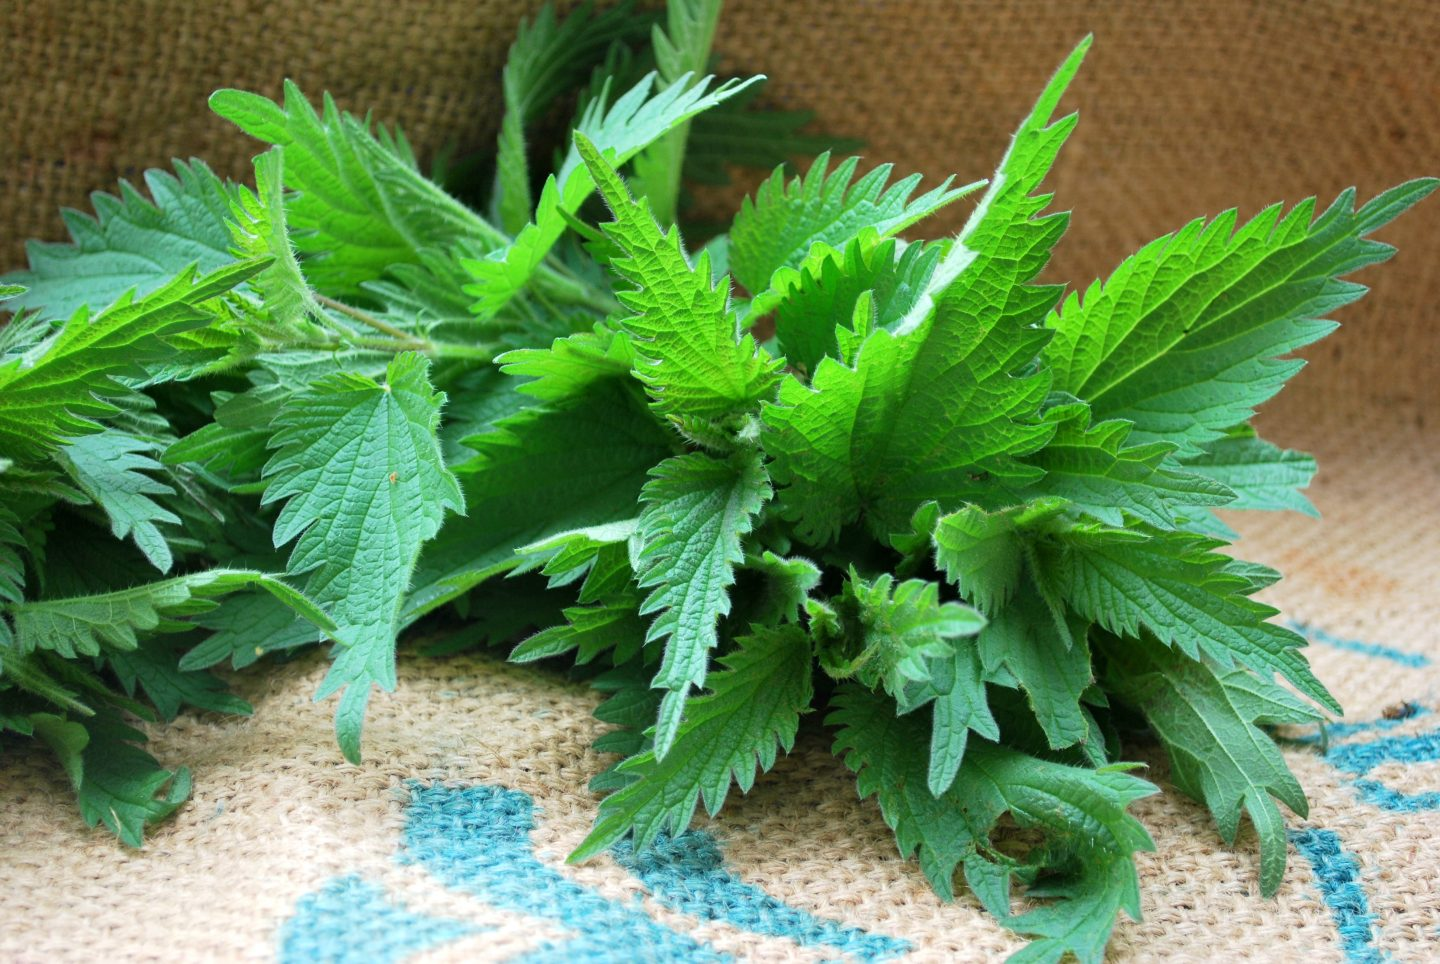 Spring Detox (with Stining Nettles)